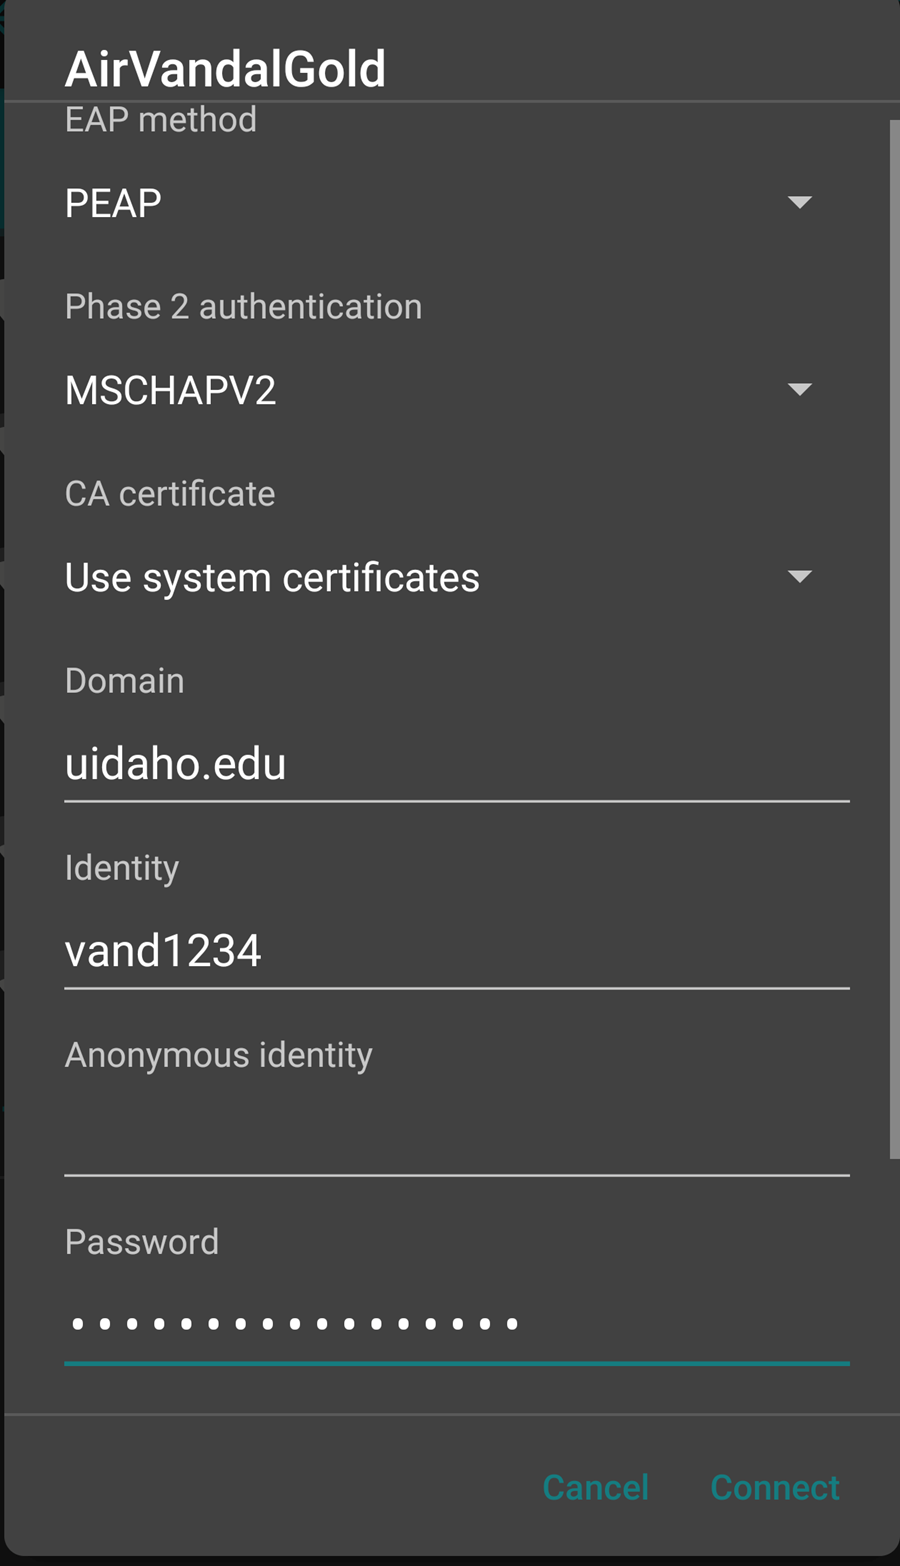 EAP method=PEAP, Phase 2 auth=MSCHAPV2, CA Certificate=use system certificates, domain=uidaho.edu, identity=netid, password=your netid password